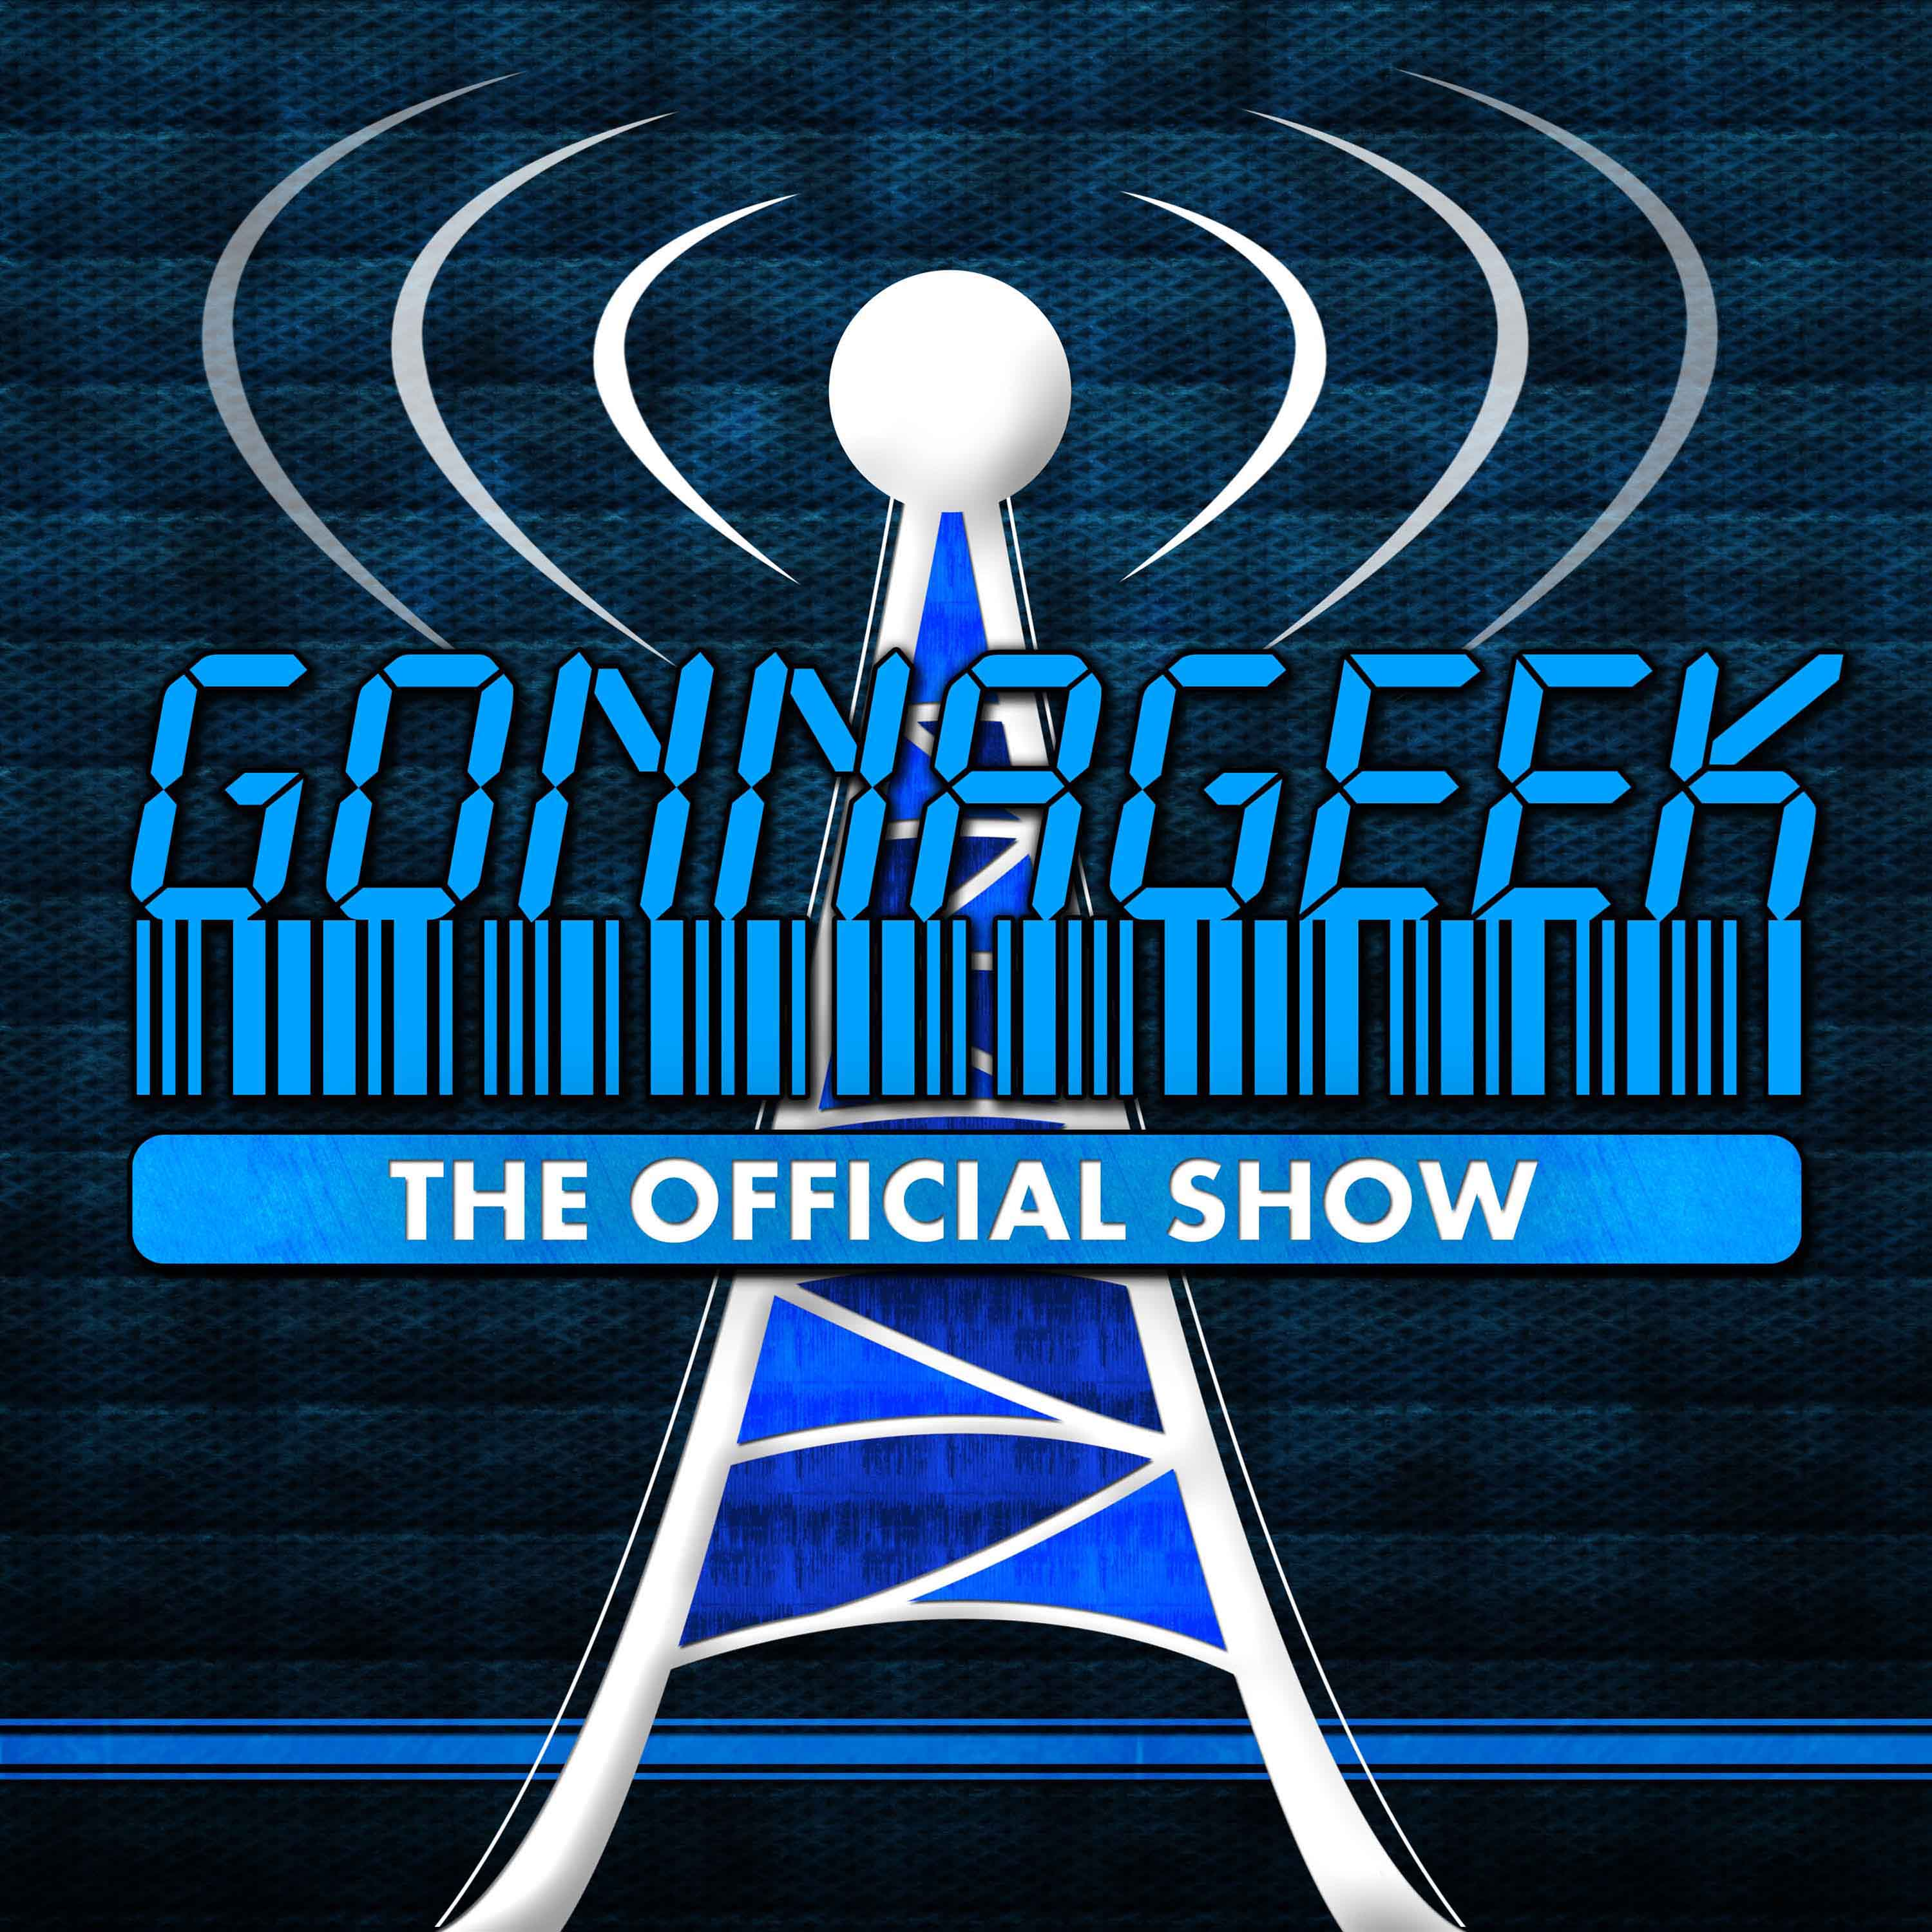 GonnaGeek.com Show - Geeky News and Other Talk